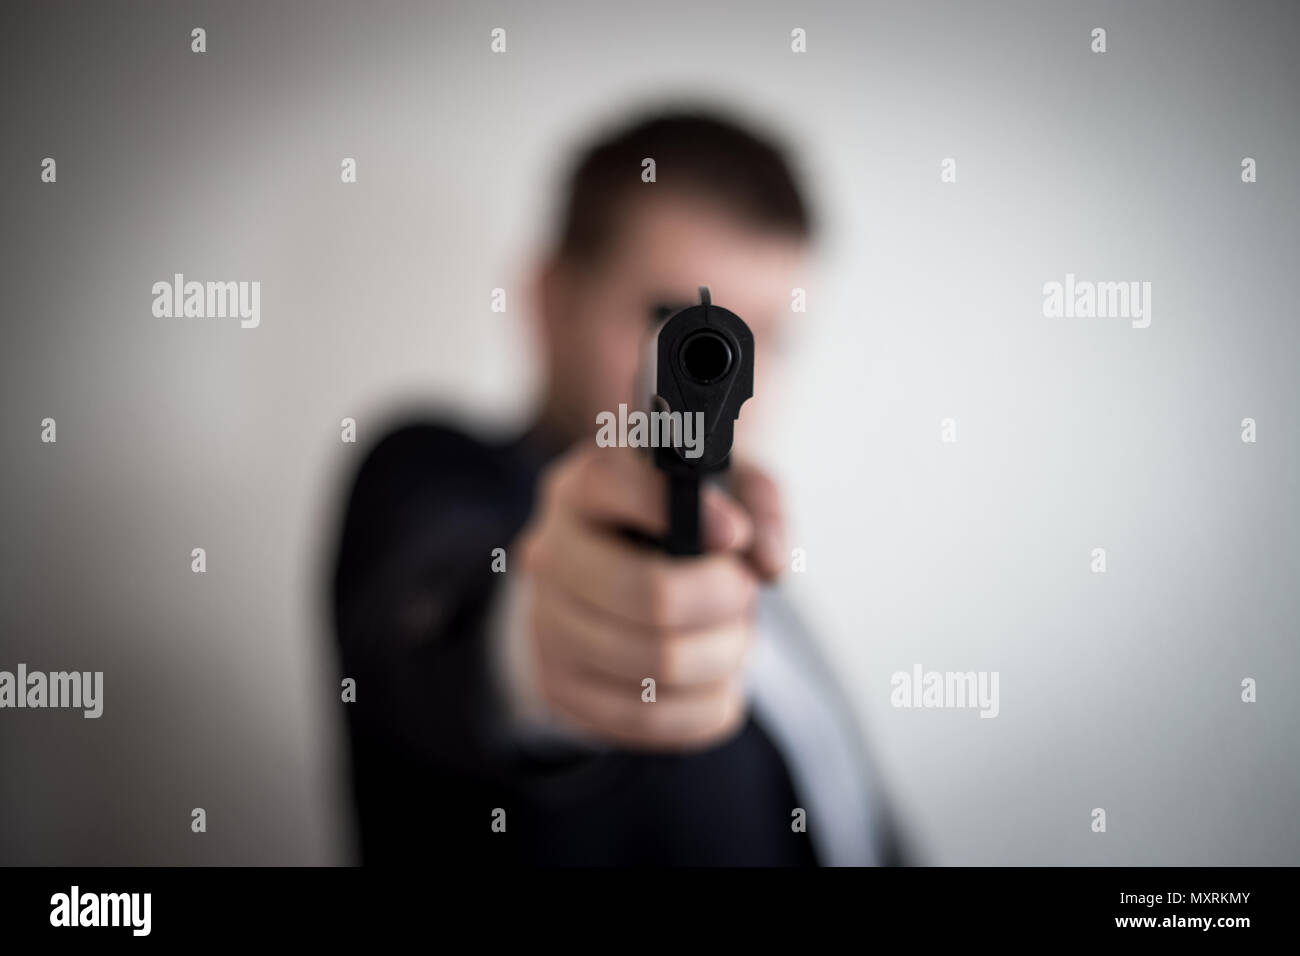 A thief in a suit with a gun directed at a man takes cash, hundreds of dollars are abducted with the help of a pistol, a crime, an armed robbery - Stock Image